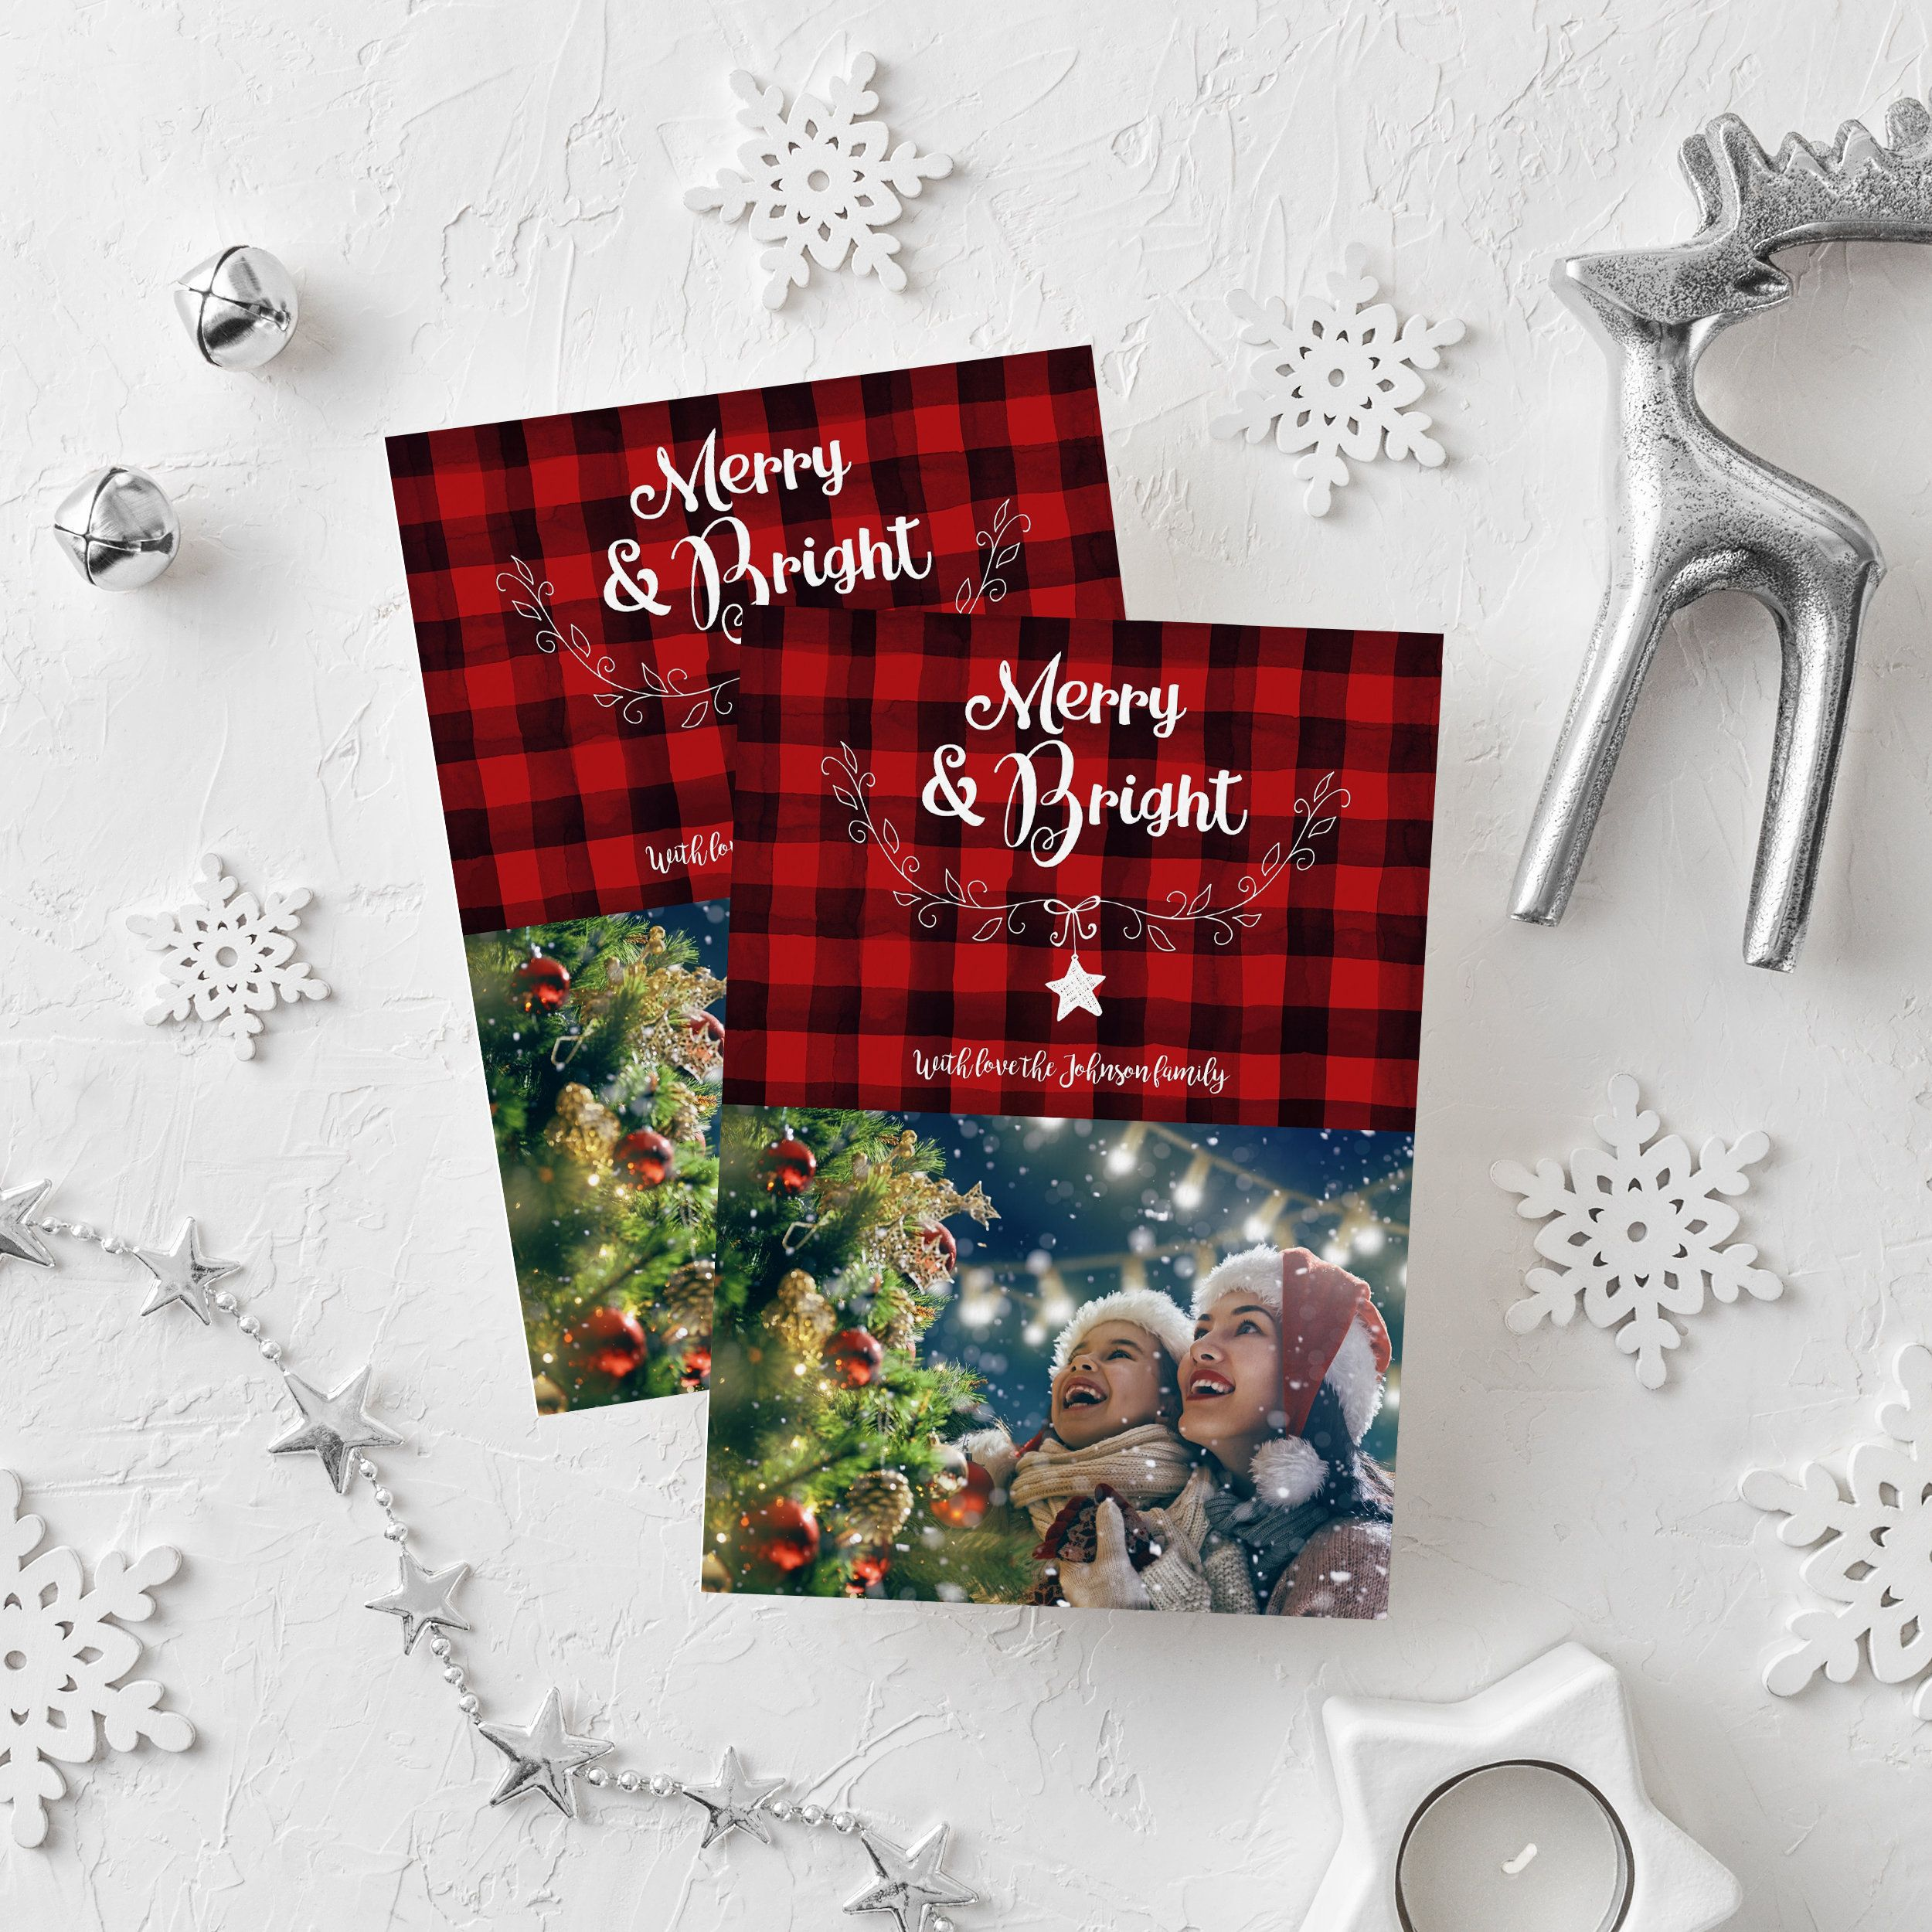 Editable Christmas Card Template Red Buffalo Plaid Merry And Bright Rustic Holiday Greeting C Christmas Card Template Holiday Greeting Cards Christmas Cards